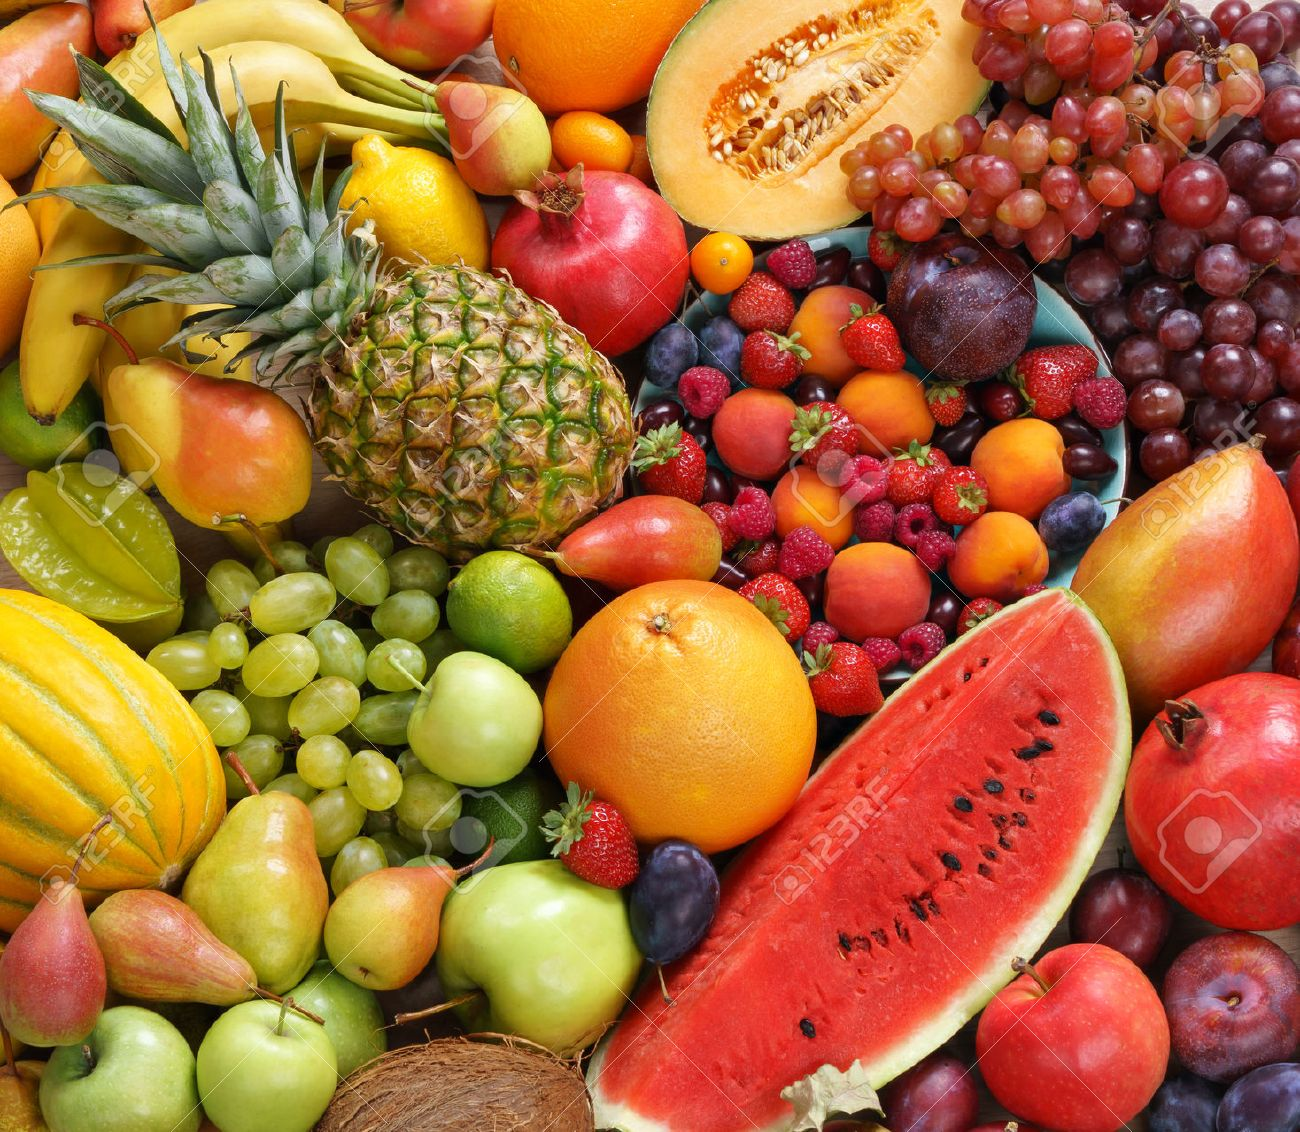 Superfood background. Only Fruit, food photography of ripe fruits at the market - 52848969